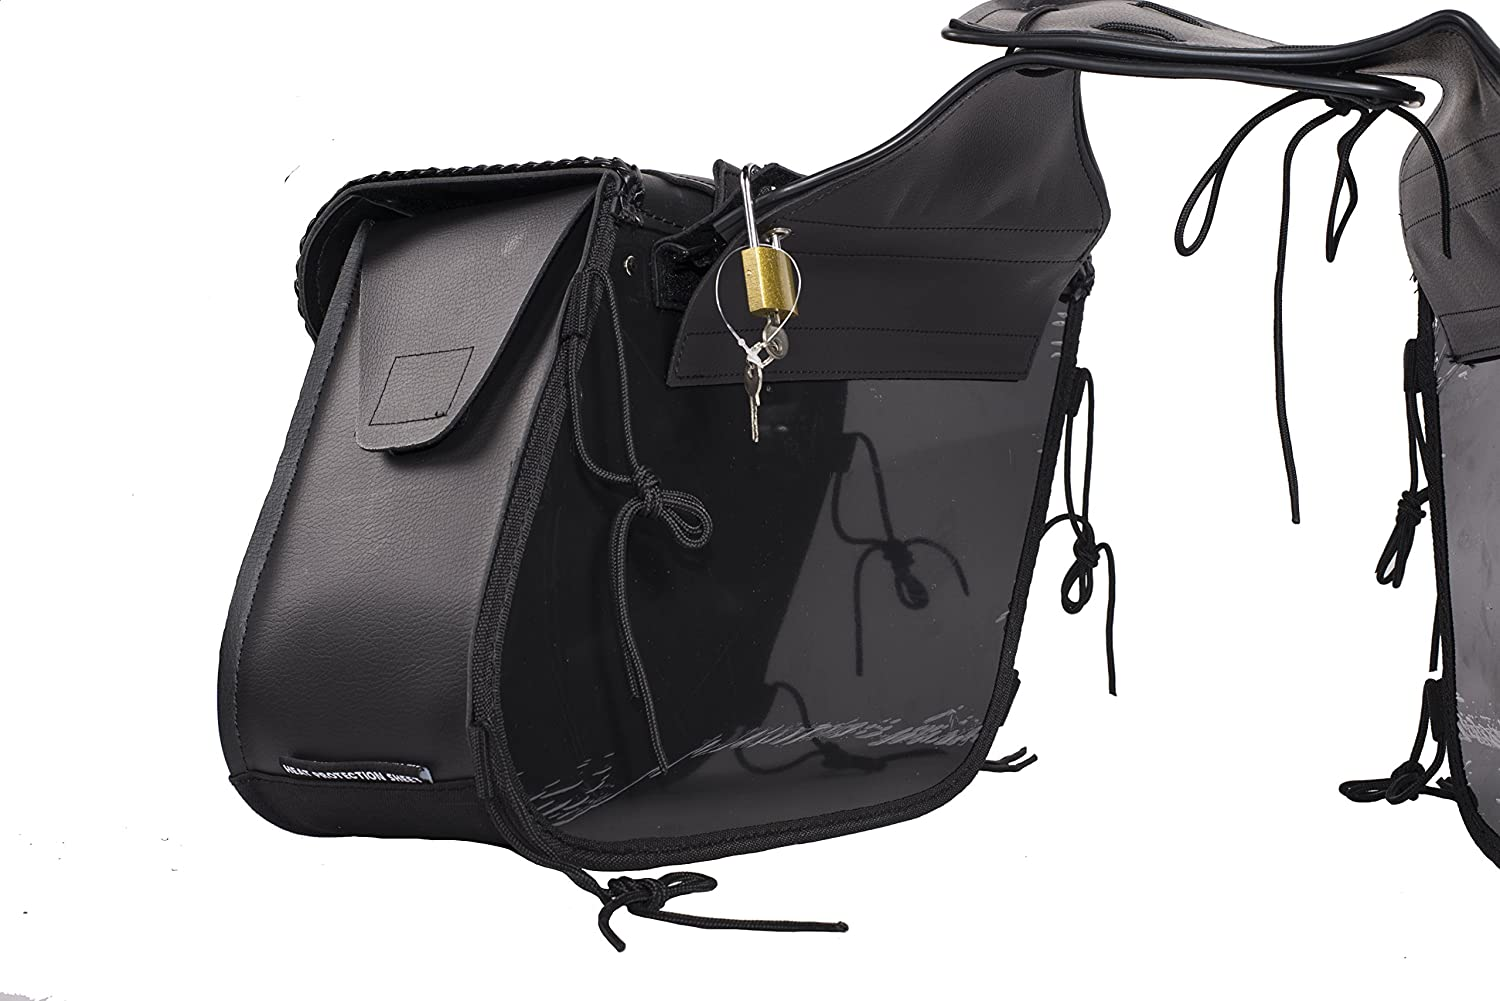 Amazon.com: Dream Apparel Universal PVC Motorcycle Saddlebag With Heavy Duty Quick Release SD4065: Automotive